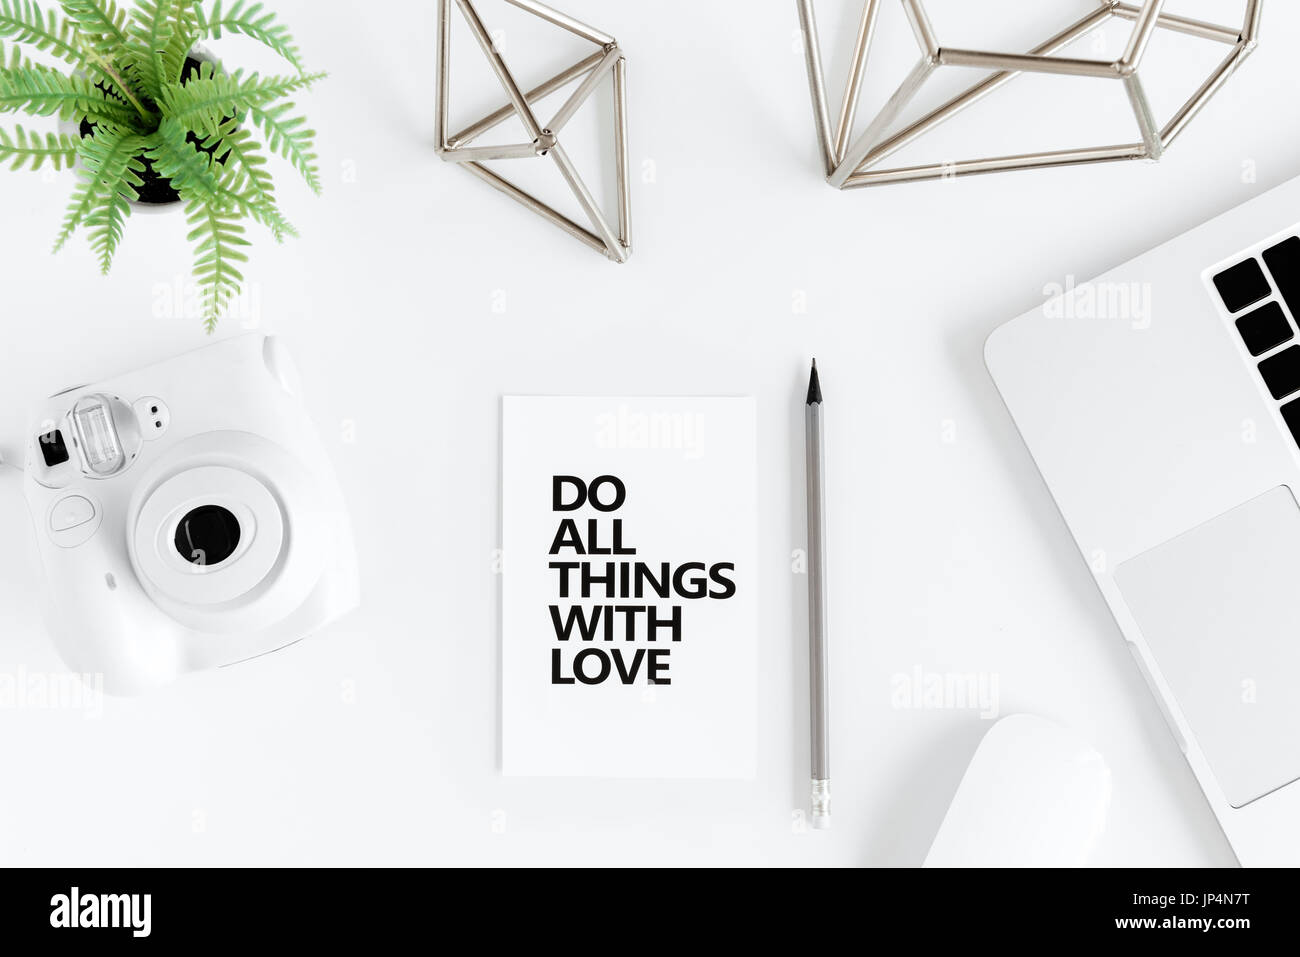 Top view of do all things with love motivational quote and instant camera at workplace - Stock Image